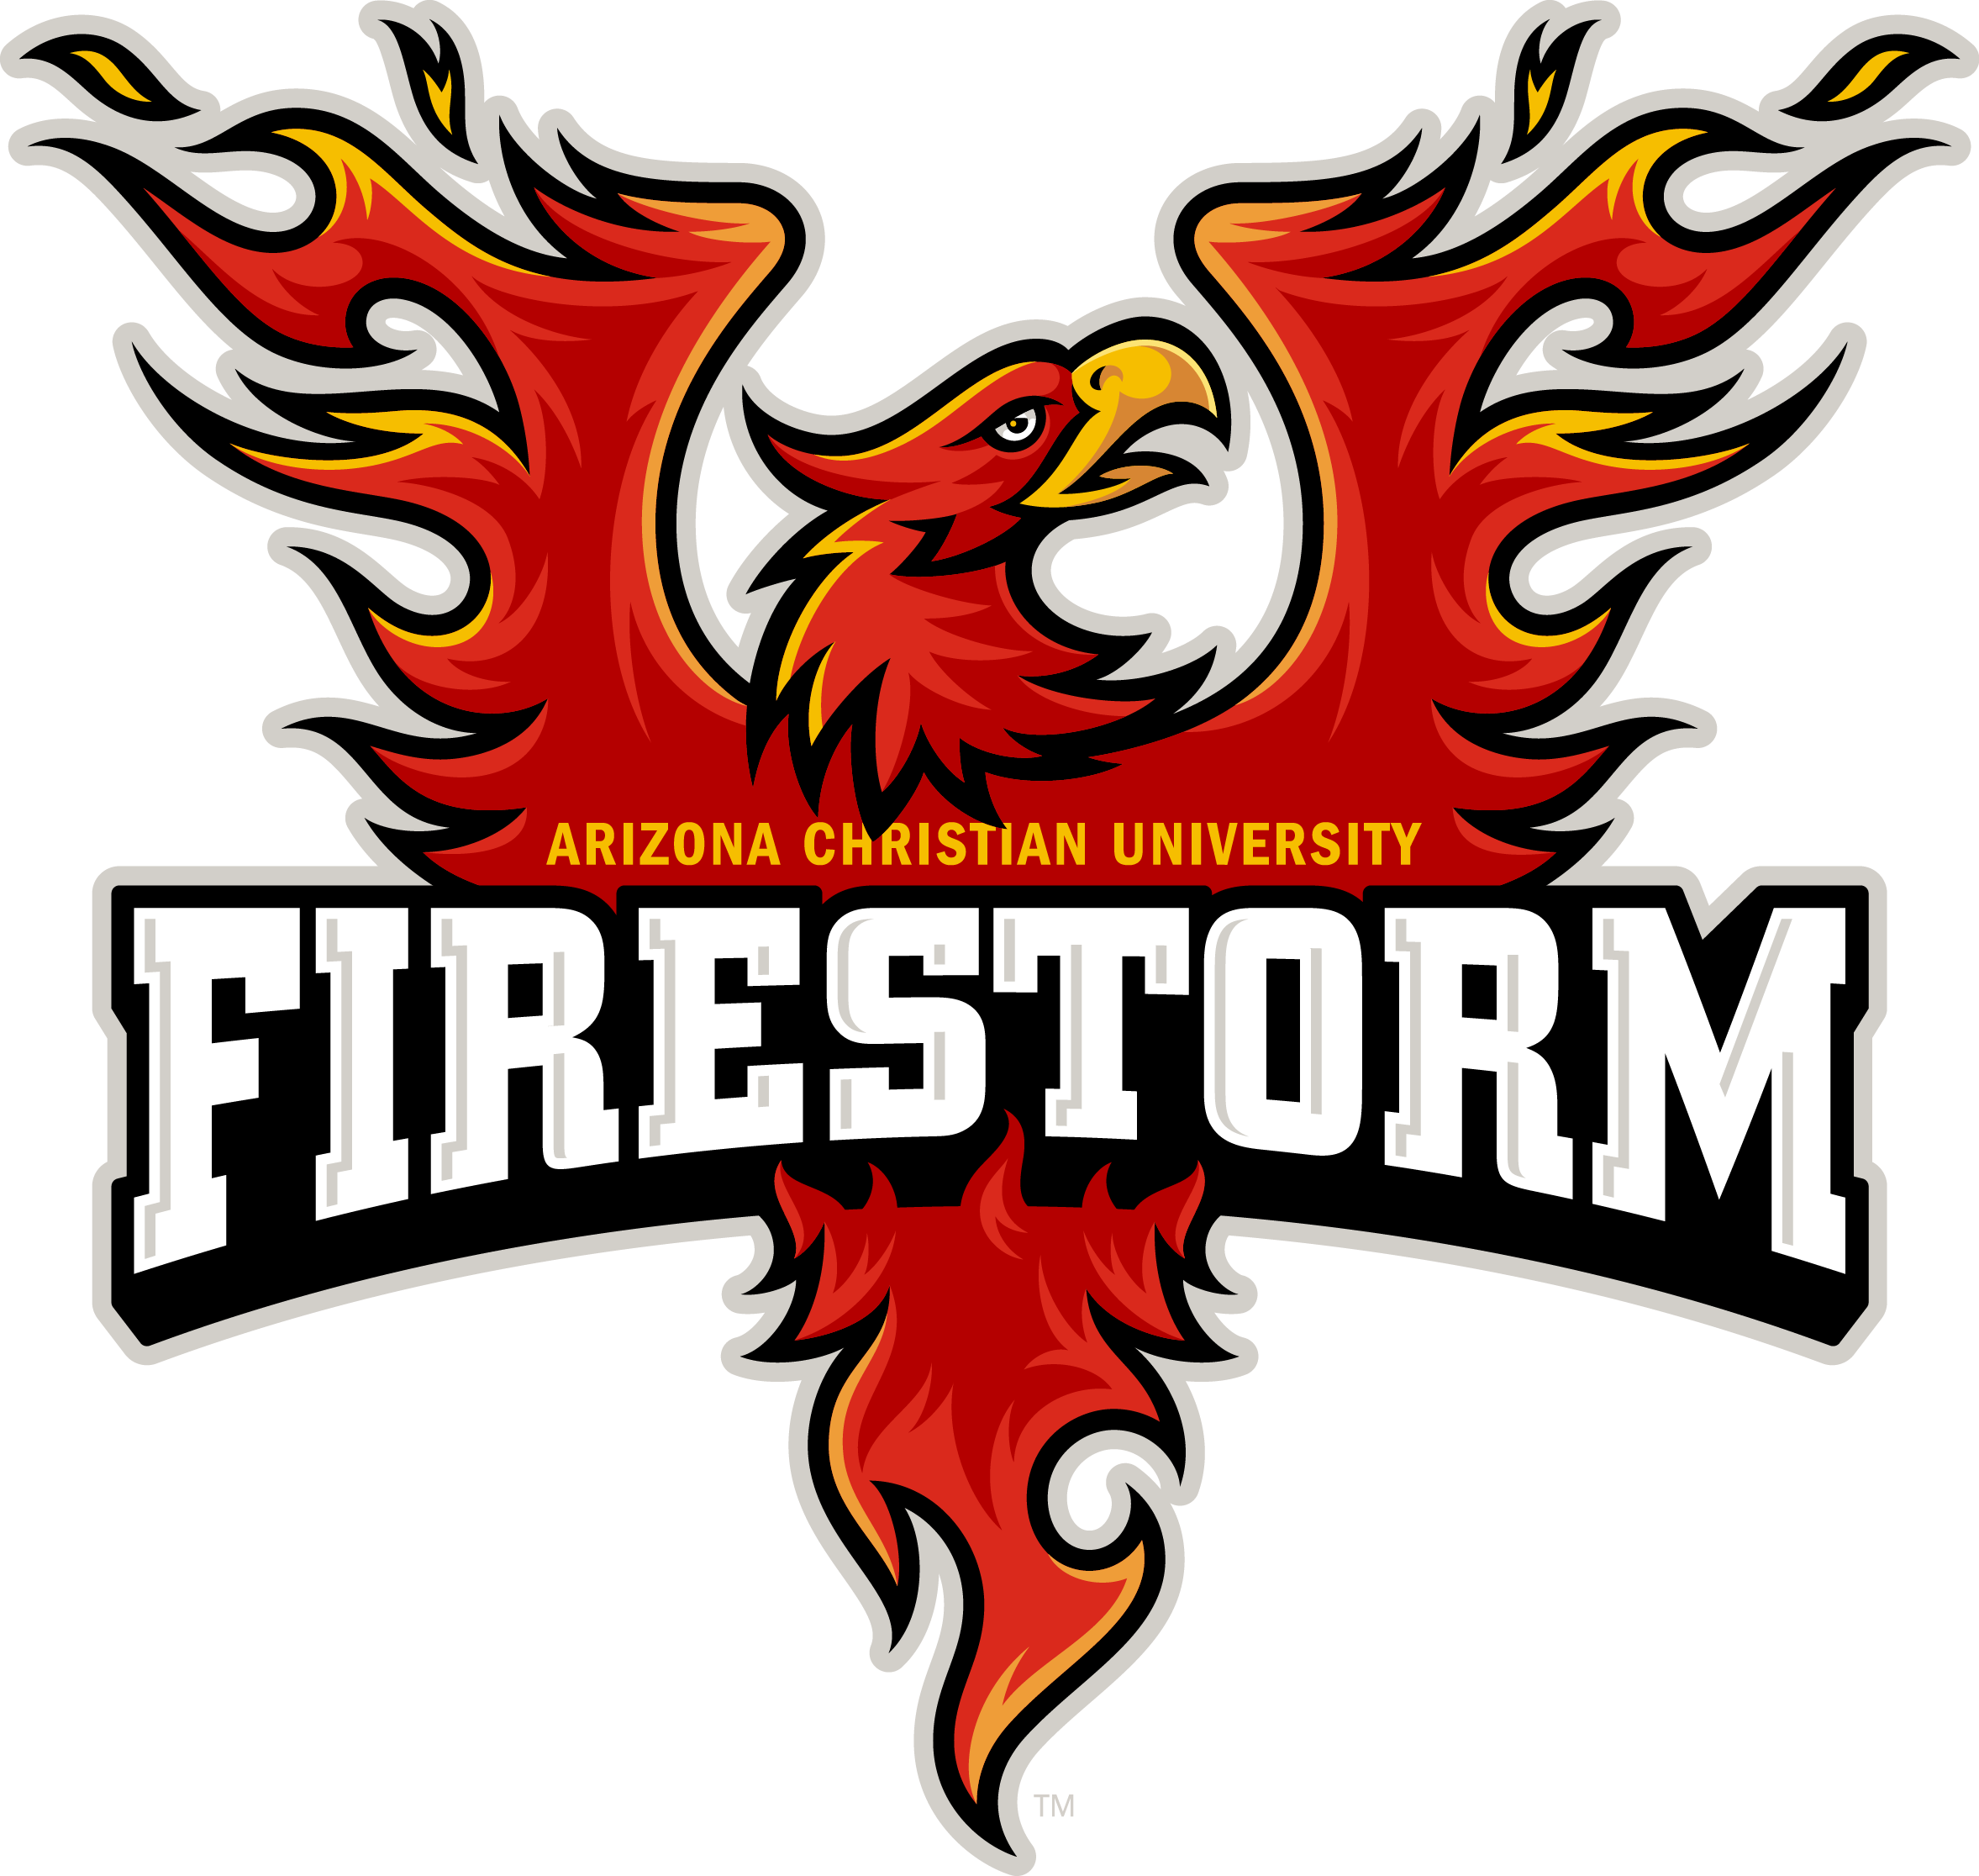 Firestorm Arizona Christian University Phoenix Div I Golden State Athletic Conference NAIA L11445